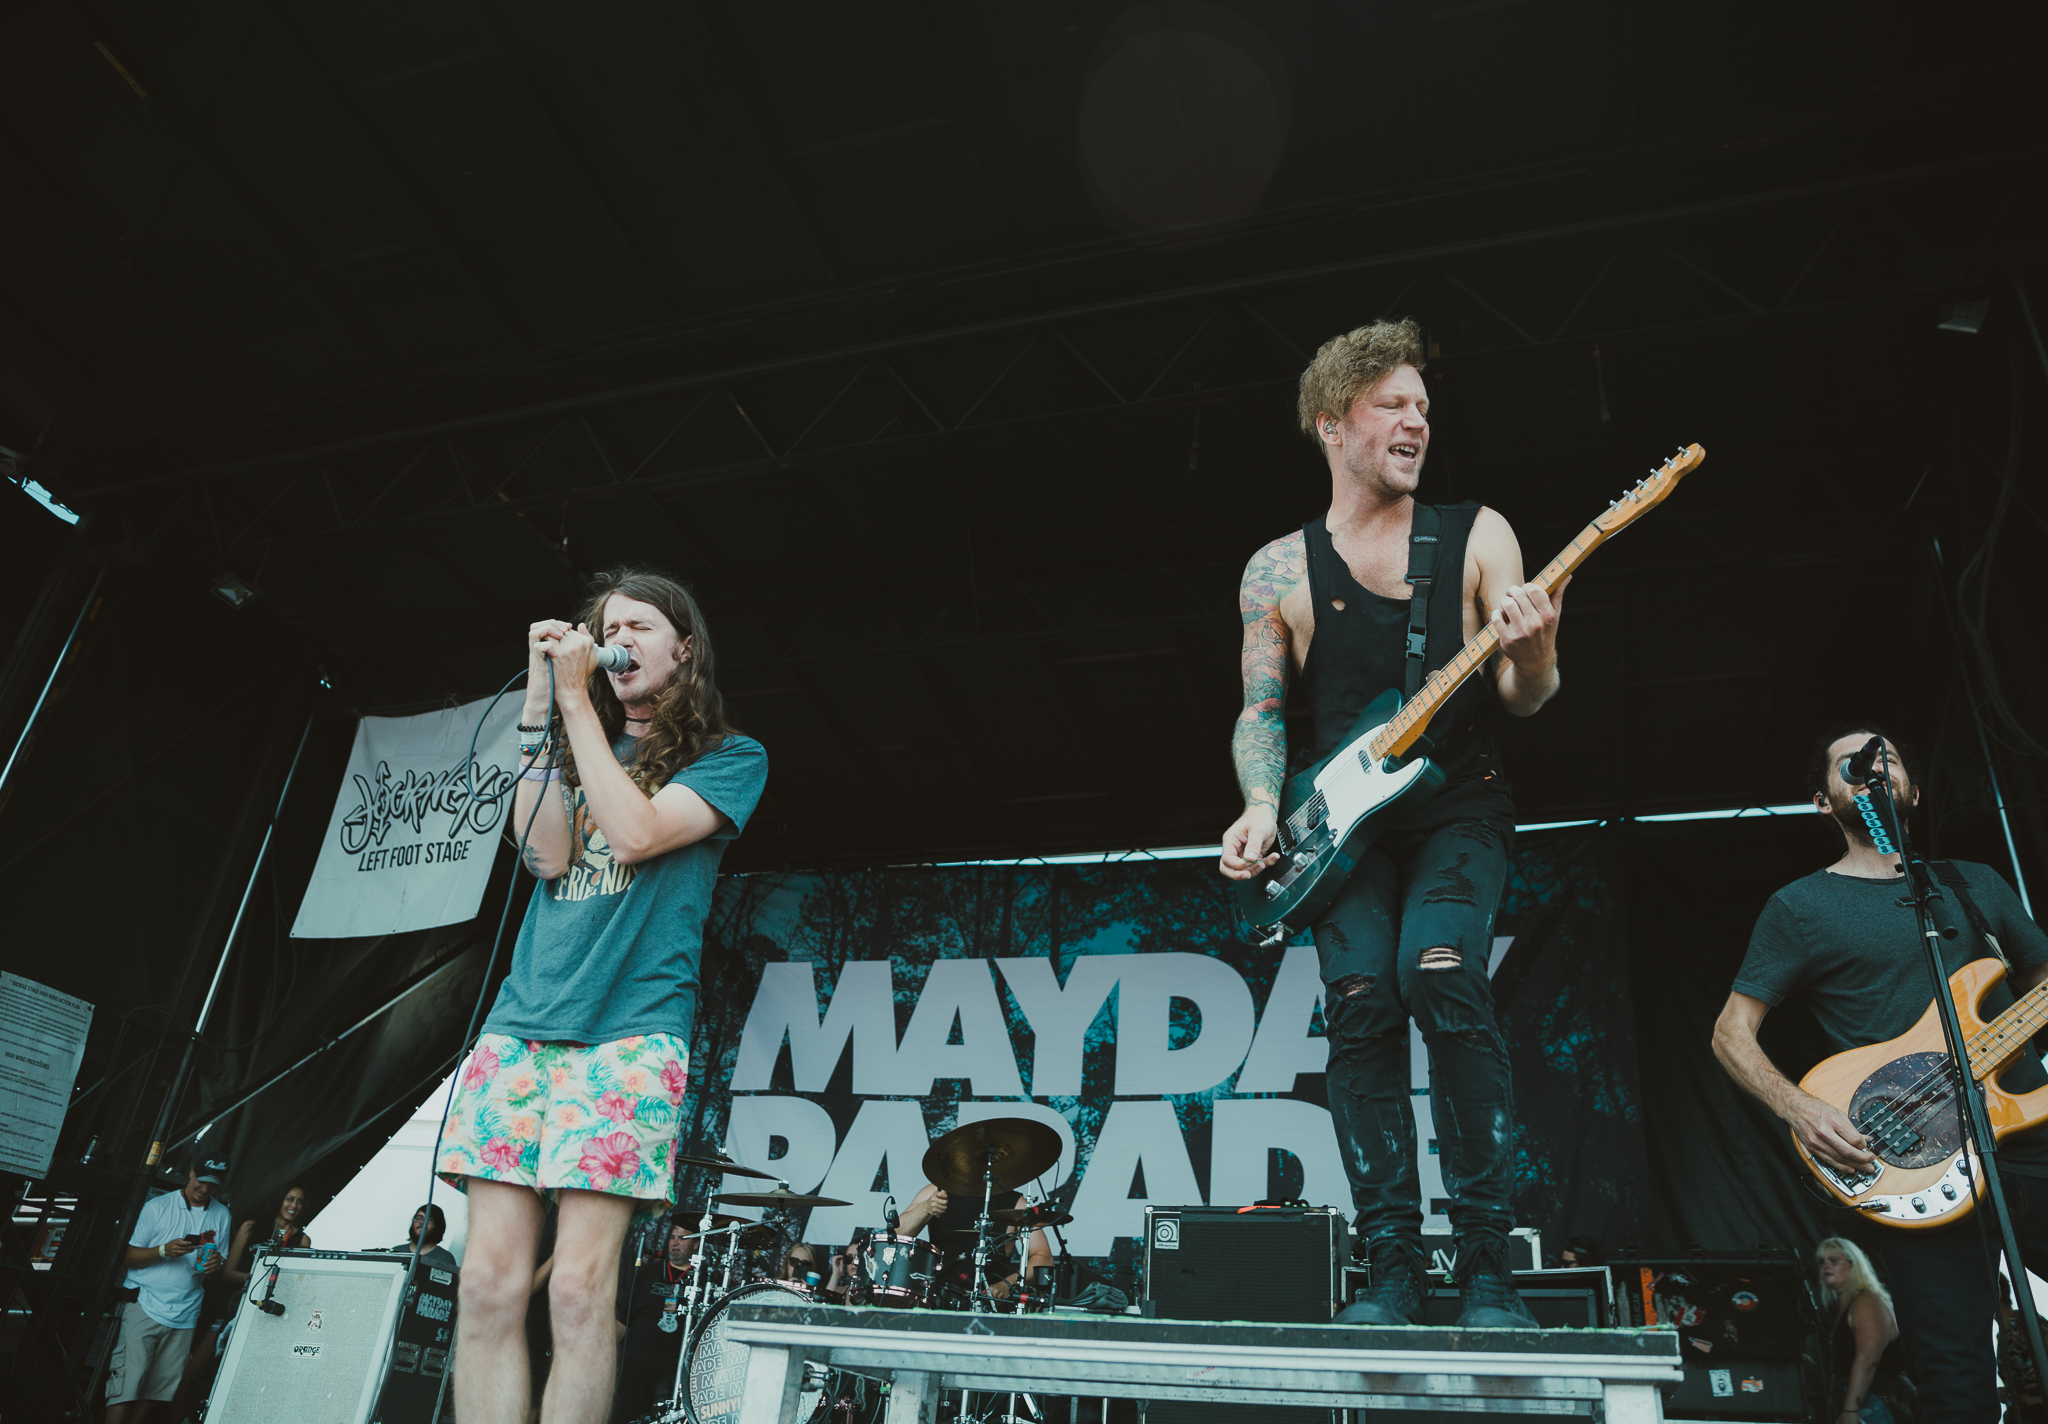 MAYDAY PARADE PERFORMING AT VAN'S WARPED TOUR IN SAN ANTONIO, TX ON JULY 07, 2018.